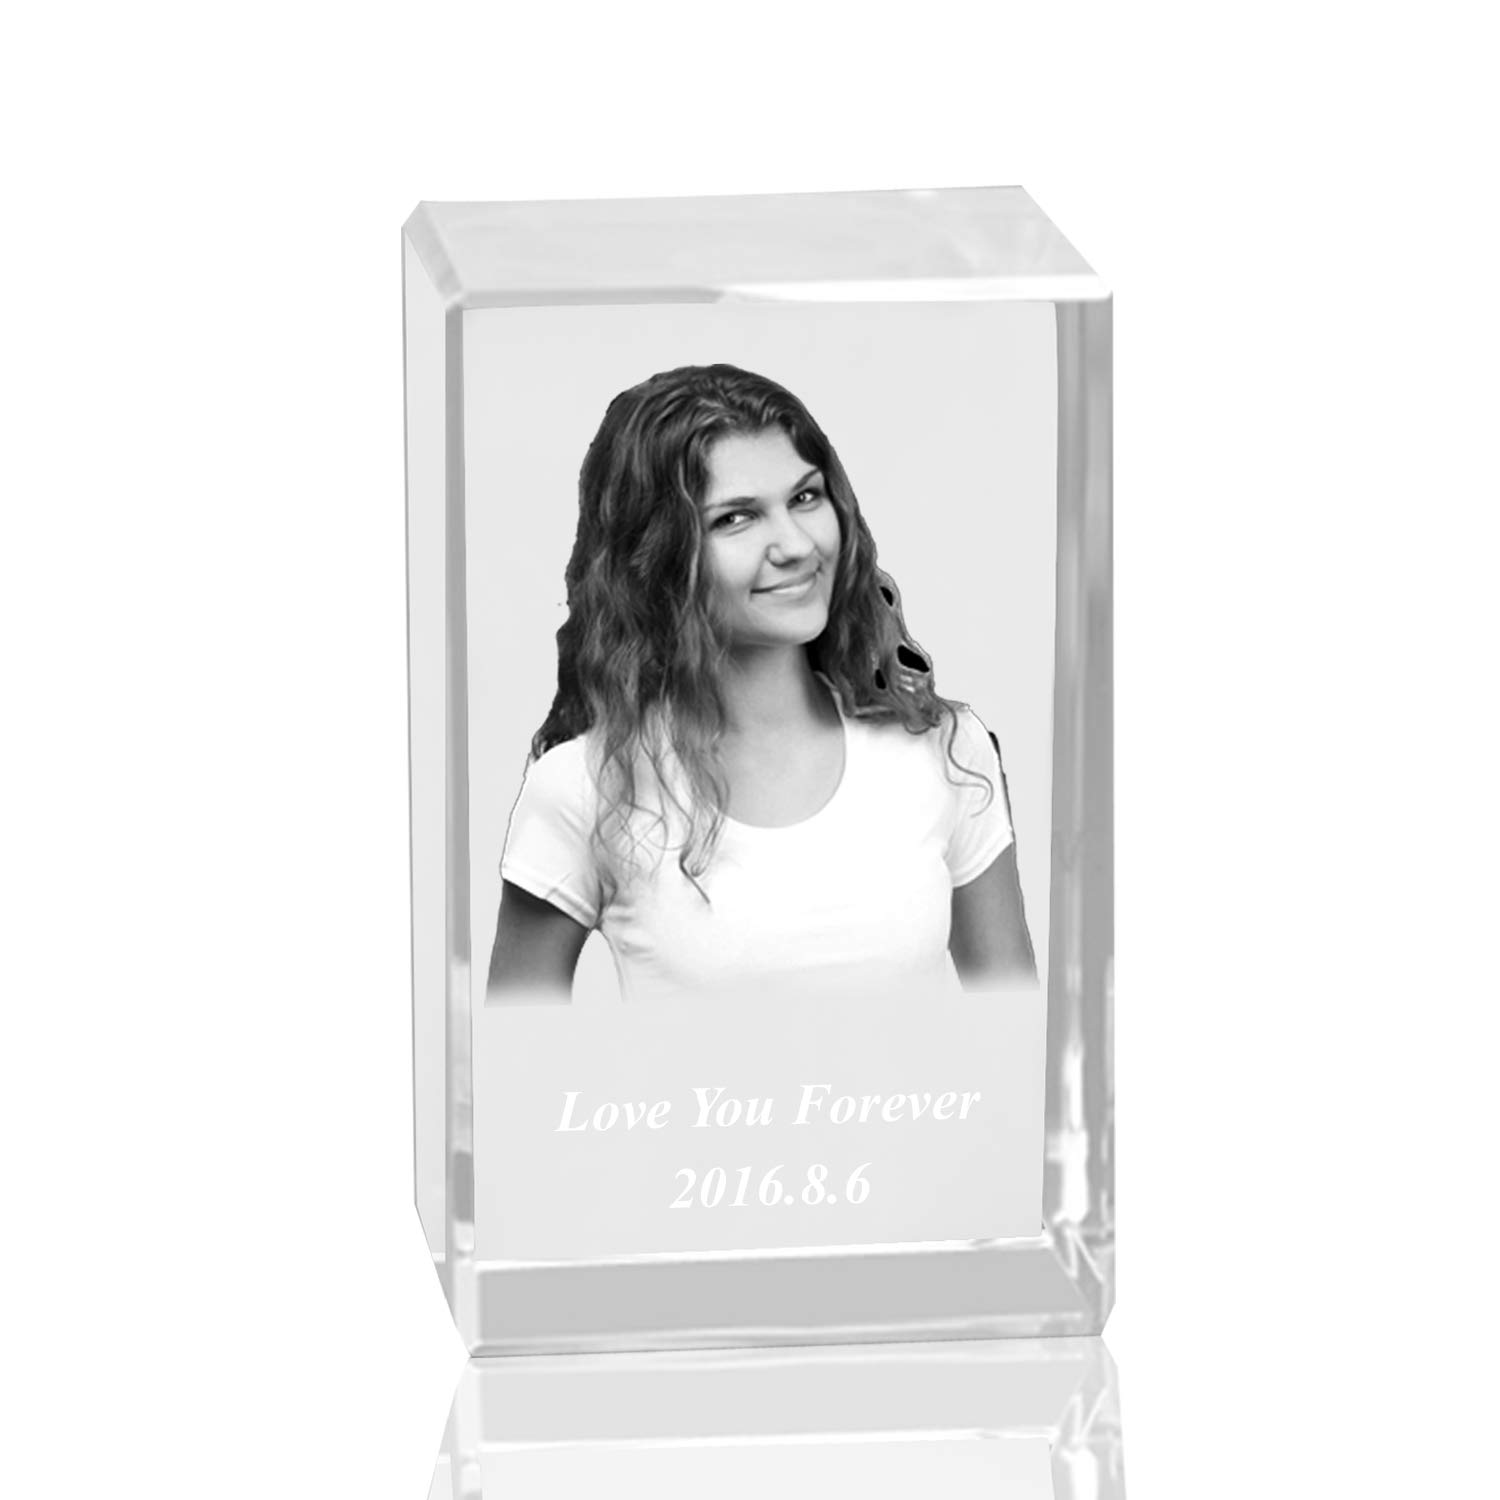 674f8720d97b Amazon.com  Qianruna Personalised Custom 2D 3D Laser Engraving Photo  Crystal Cube Etched Glass Picture Block Paperweight for Wedding and  Birthday Gifts  ...